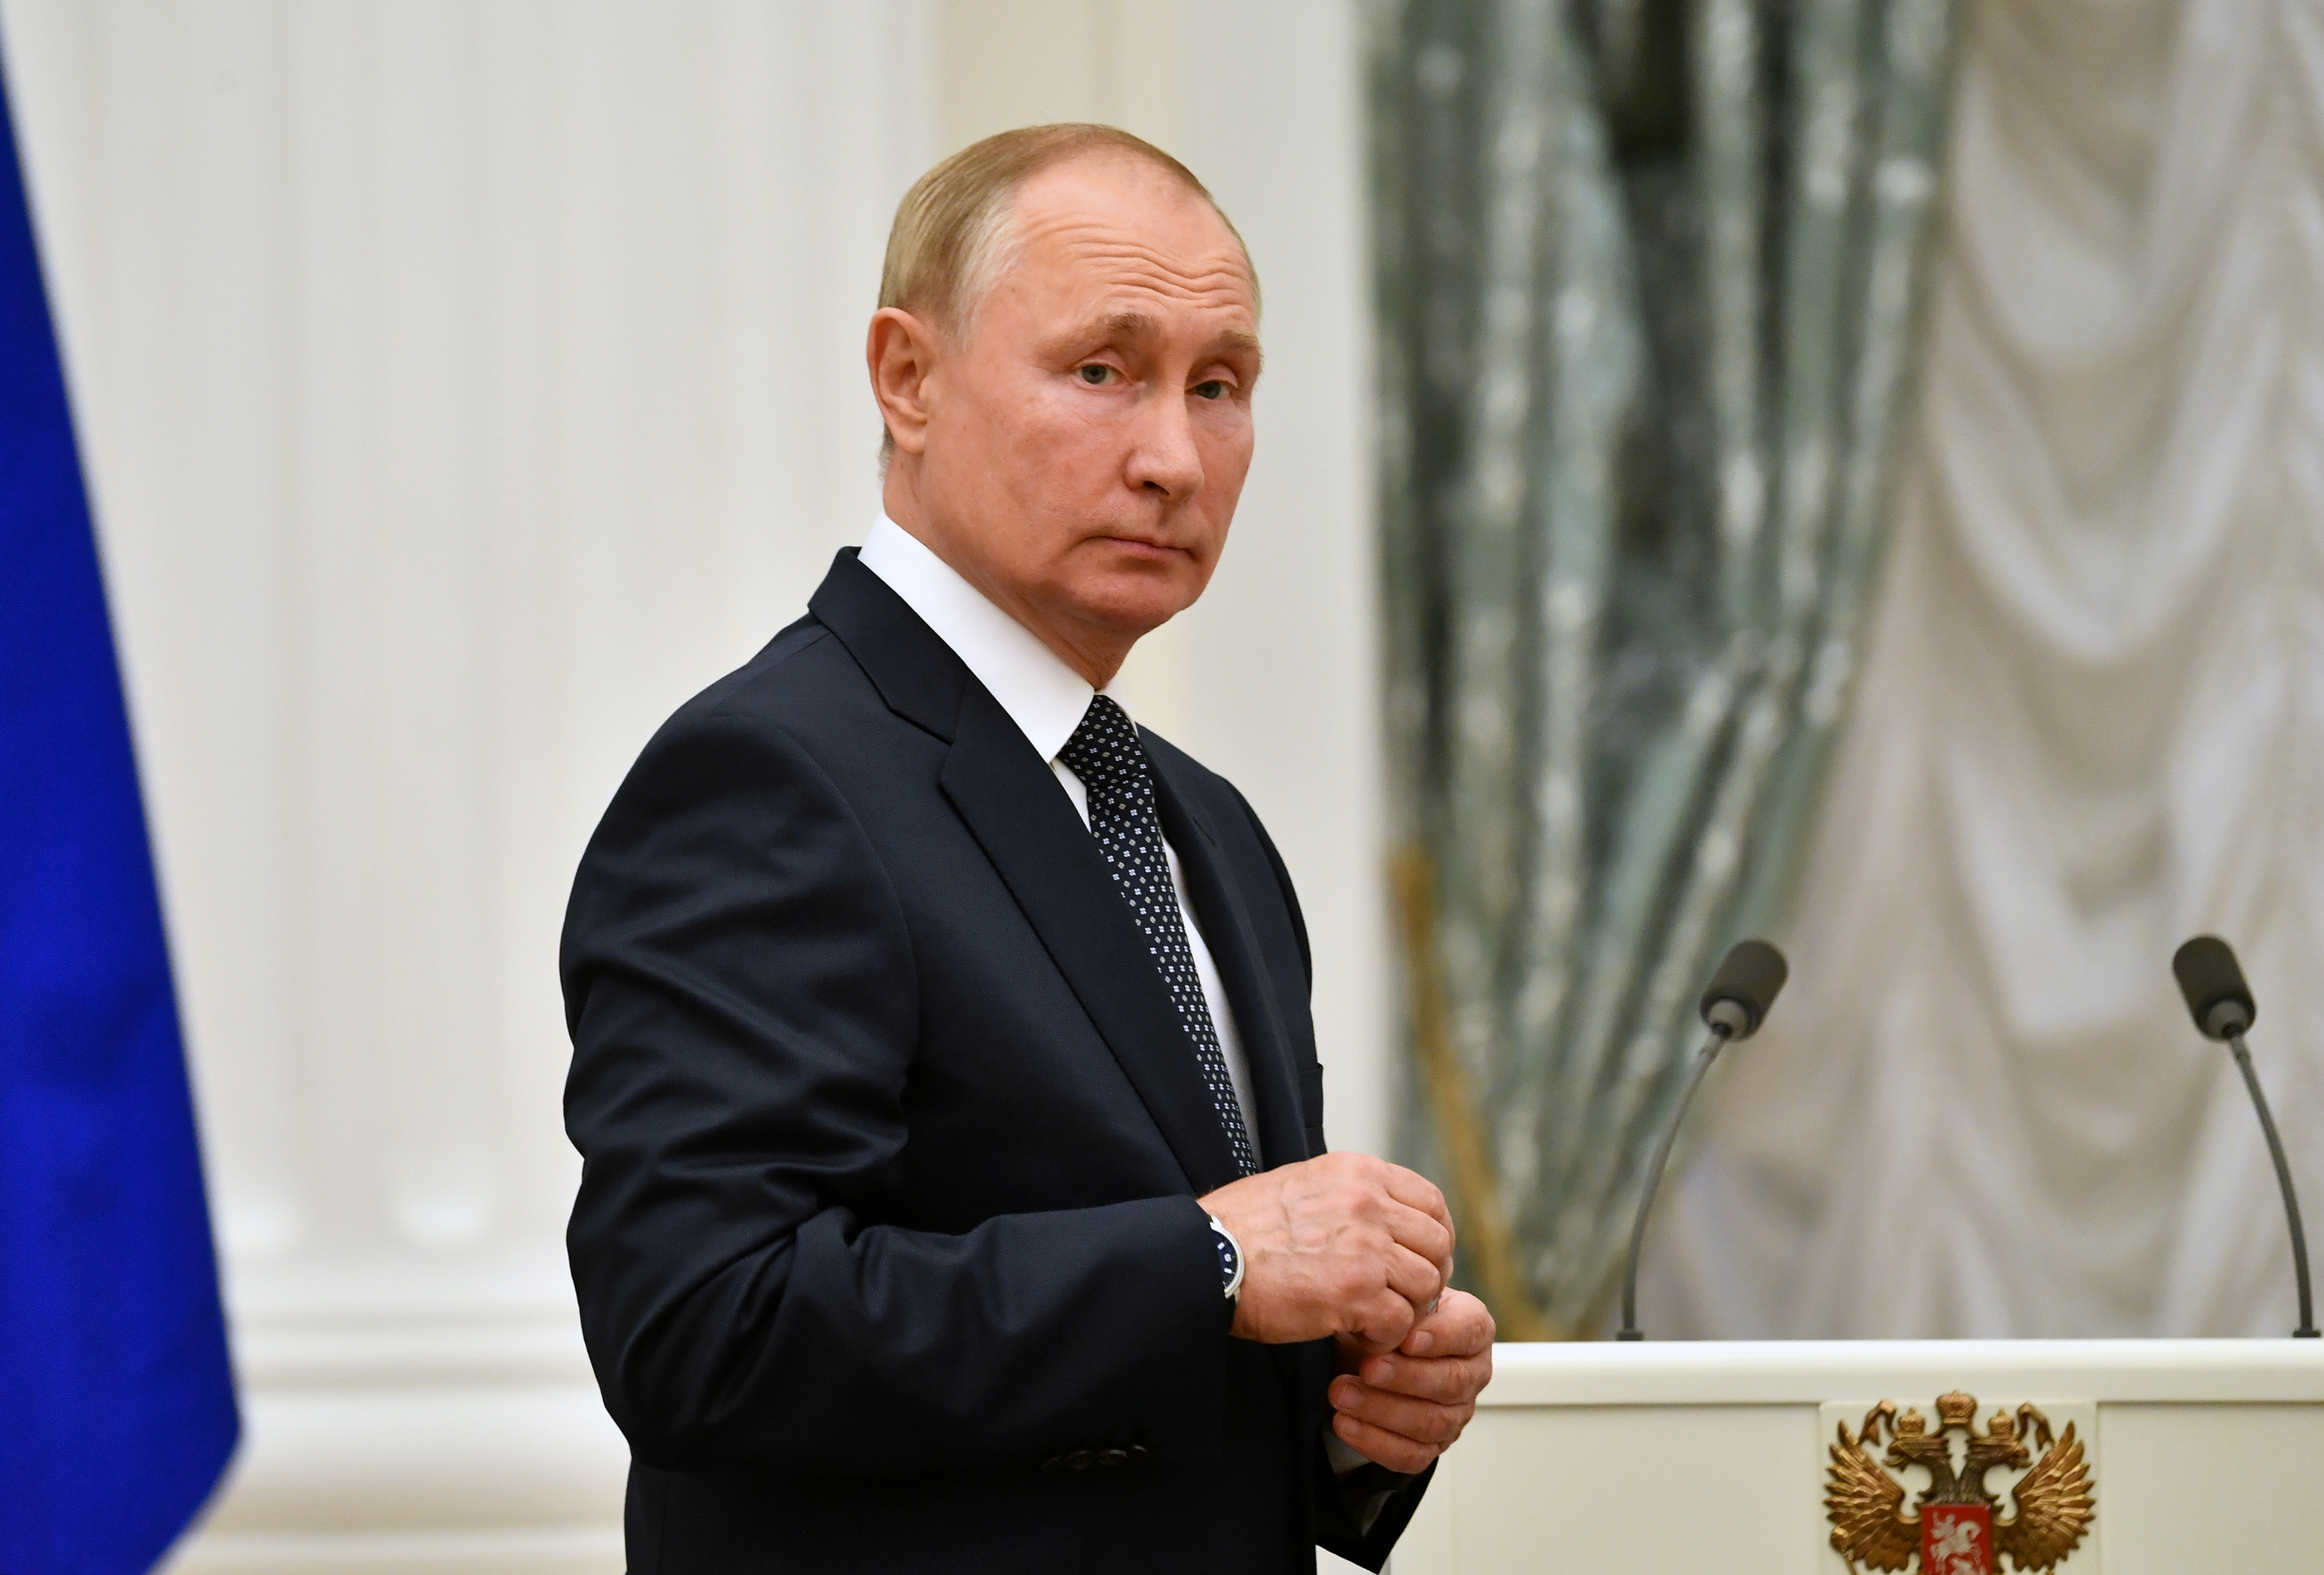 Russian President Vladimir Putin looks on during a meeting with athletes, participants of the 2020 Tokyo Olympic Games, in Moscow, Russia September 11, 2021.  Sputnik/Evgeny Biyatov/Kremlin via REUTERS